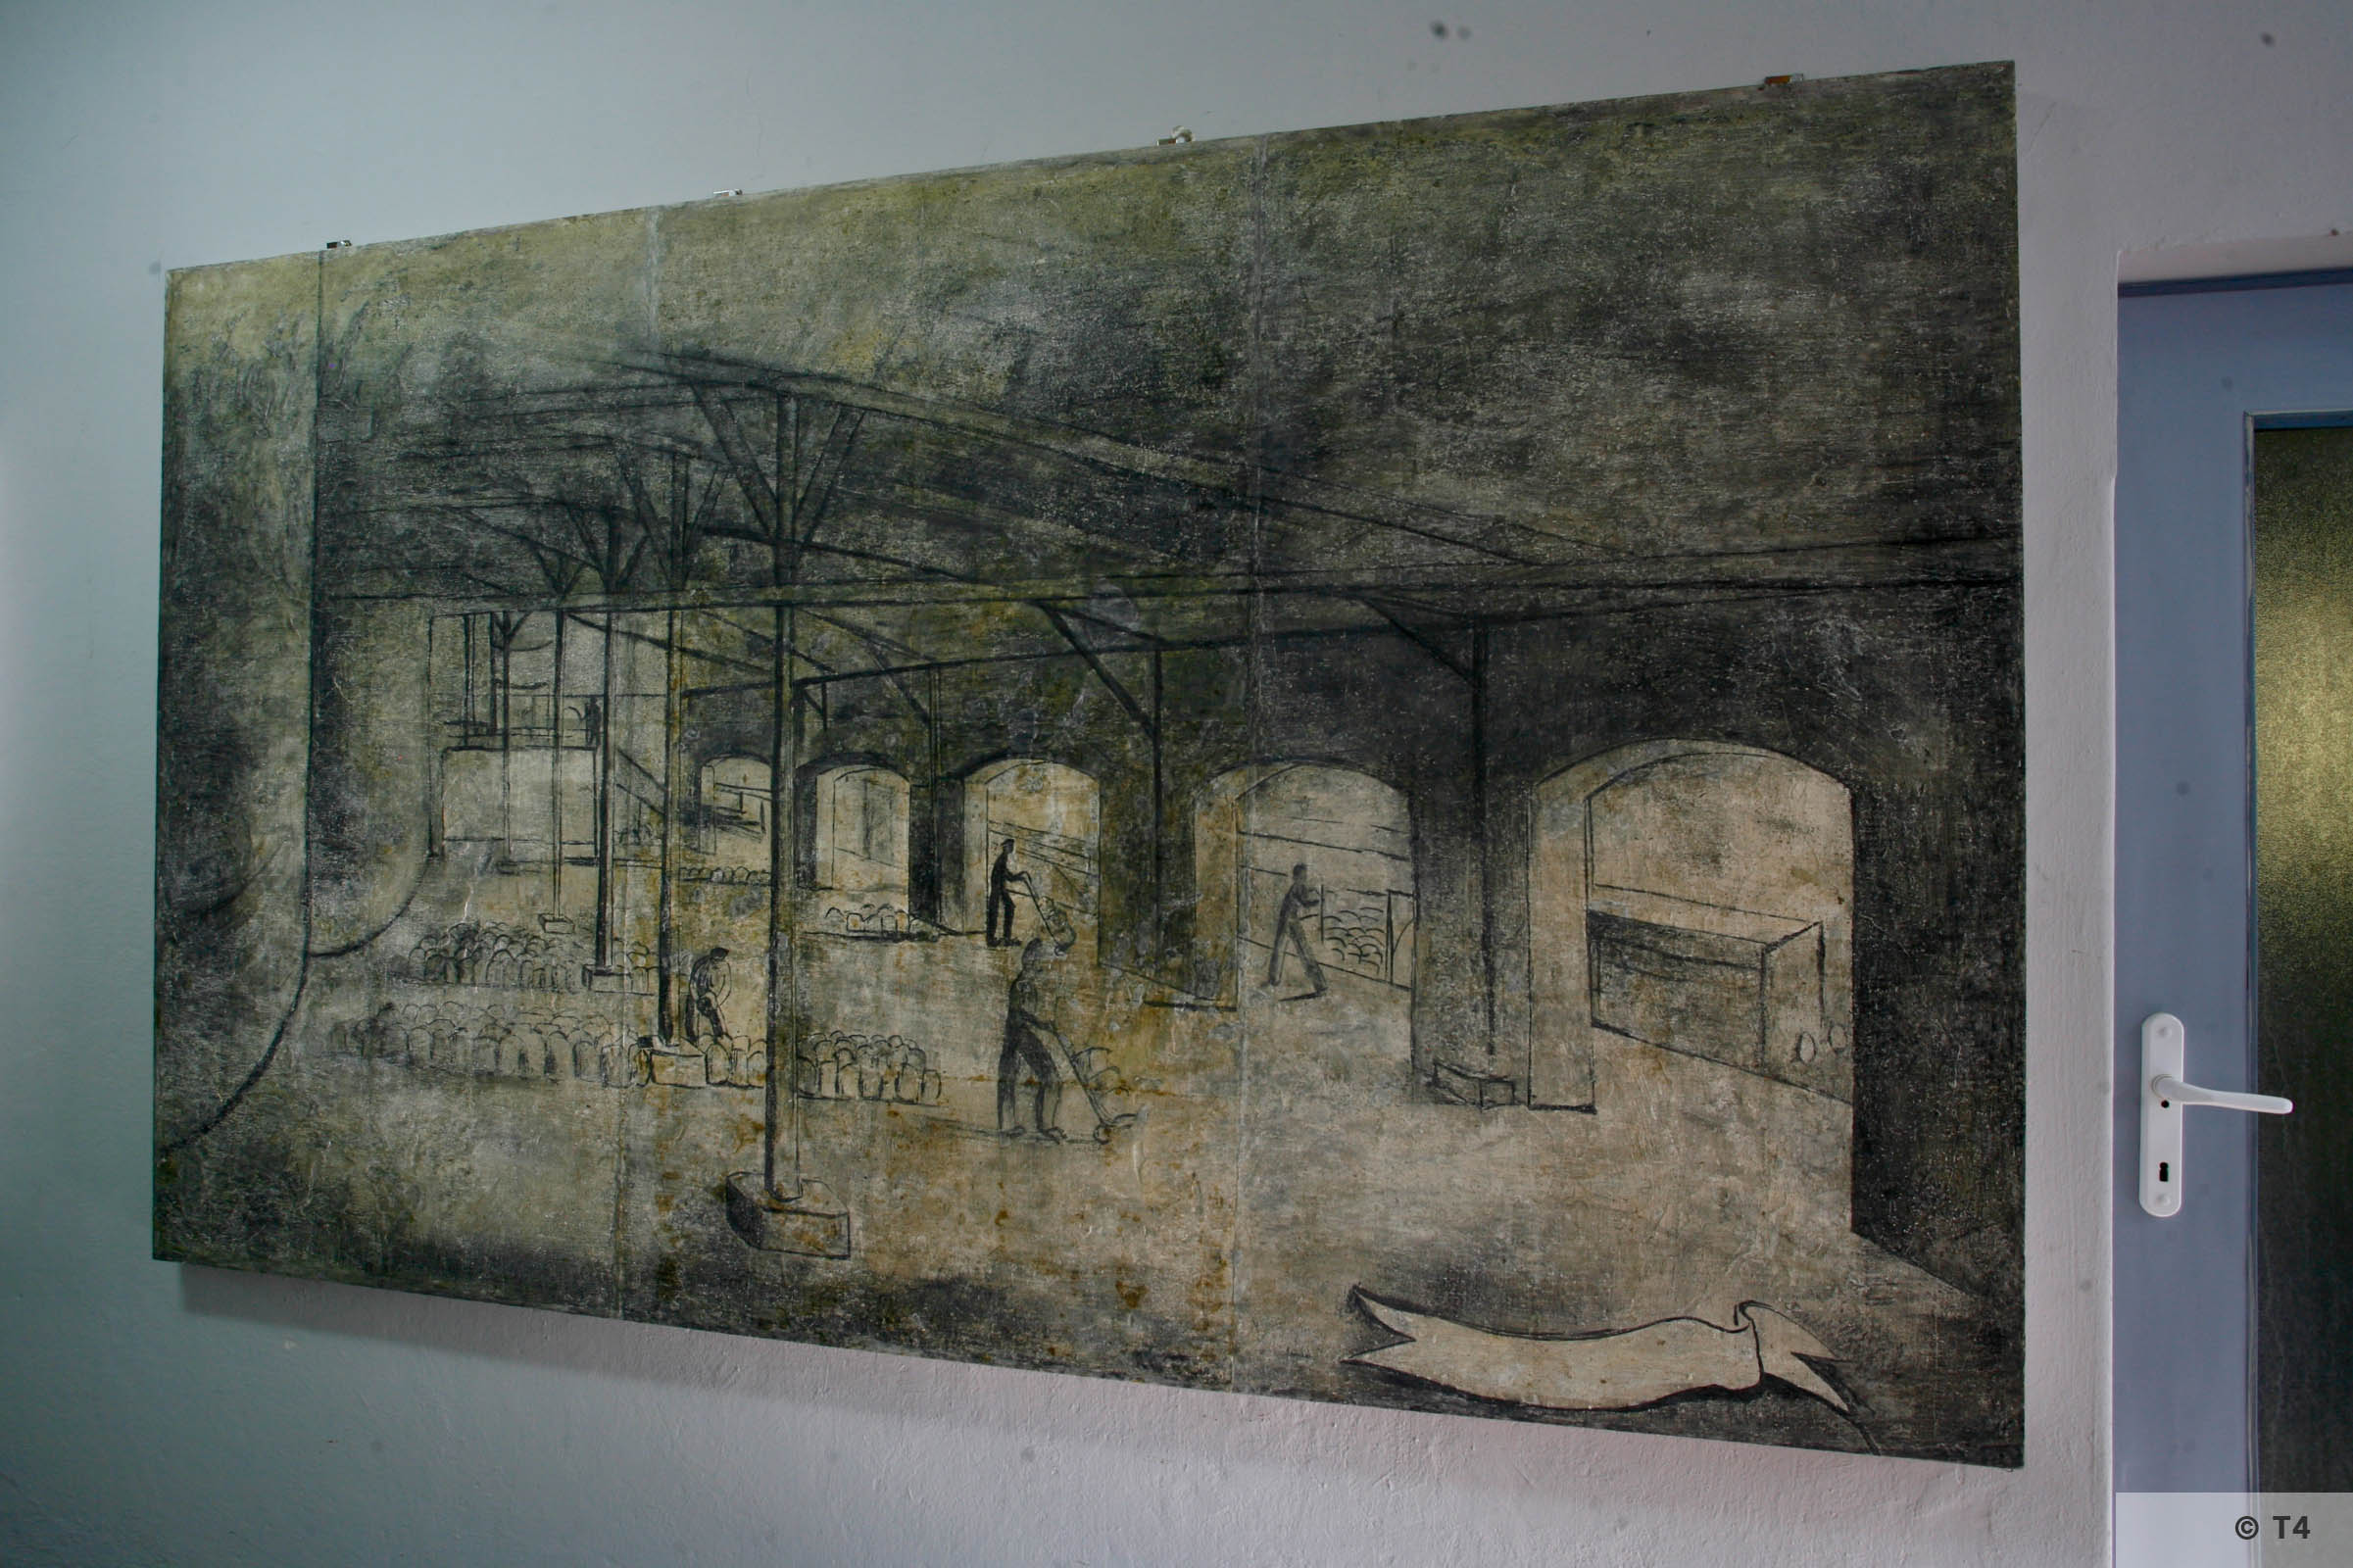 Recovered frescos in Auschwitz Birkenau State Museum. 2006 T4 3685